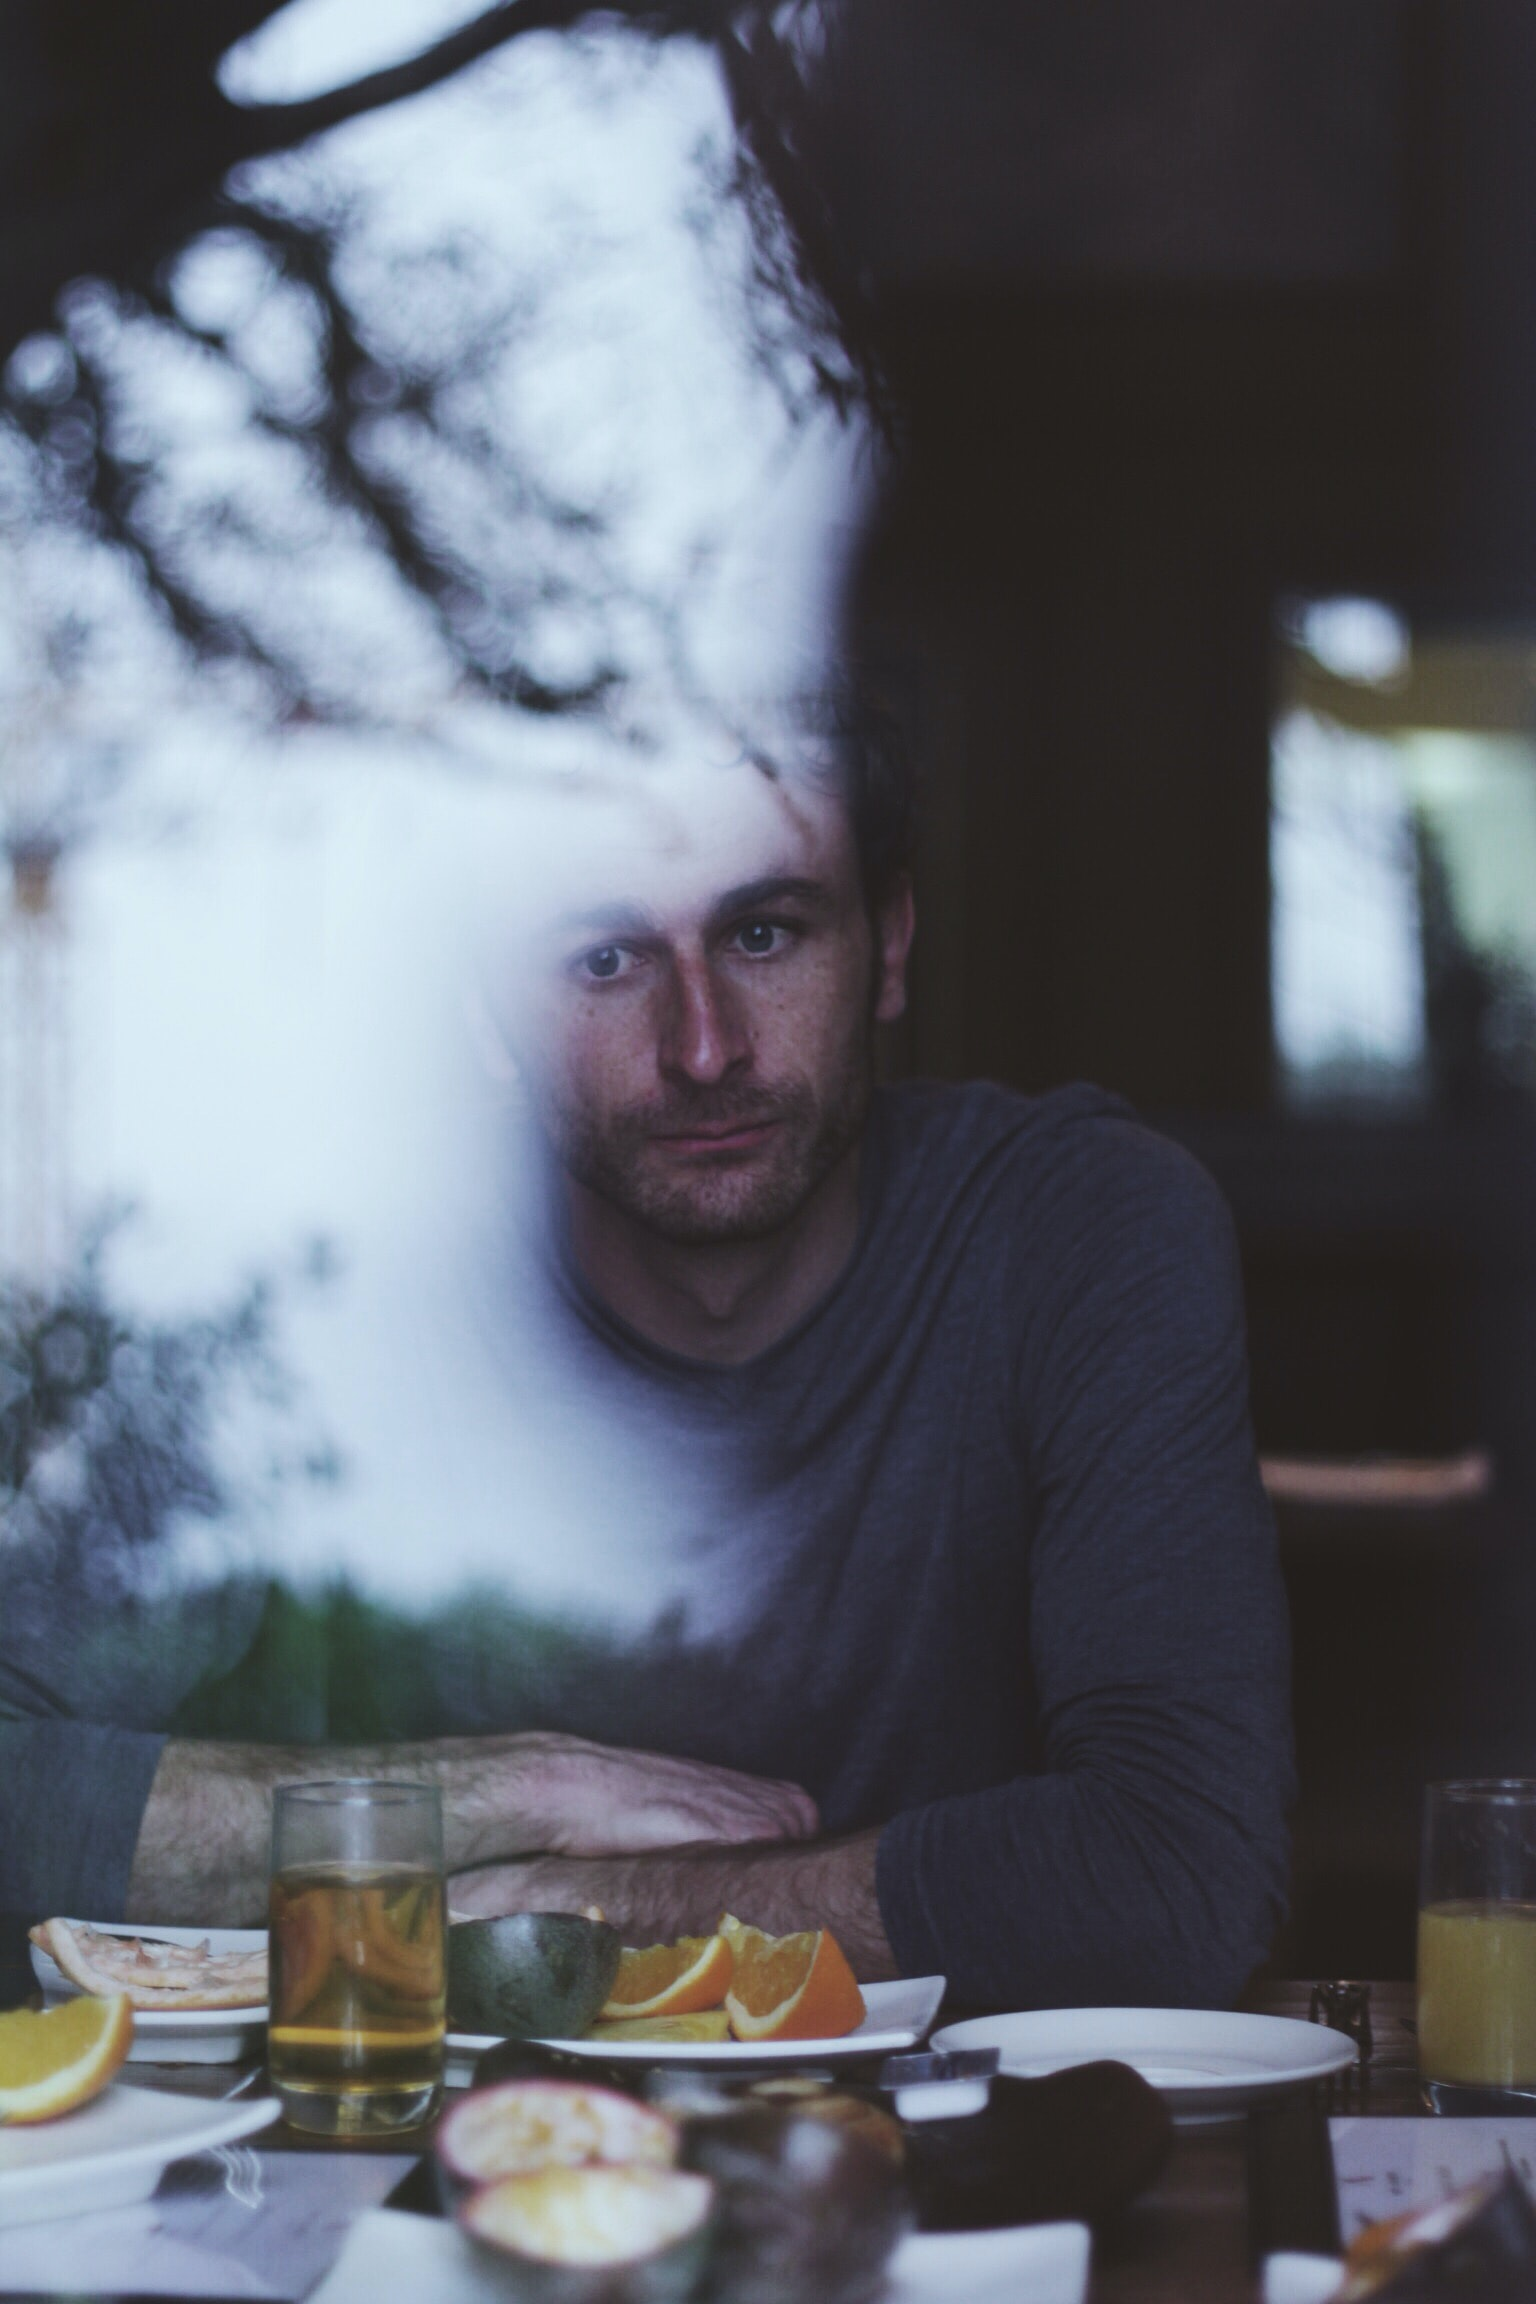 man sitting in front of table with sliced citrus fruit